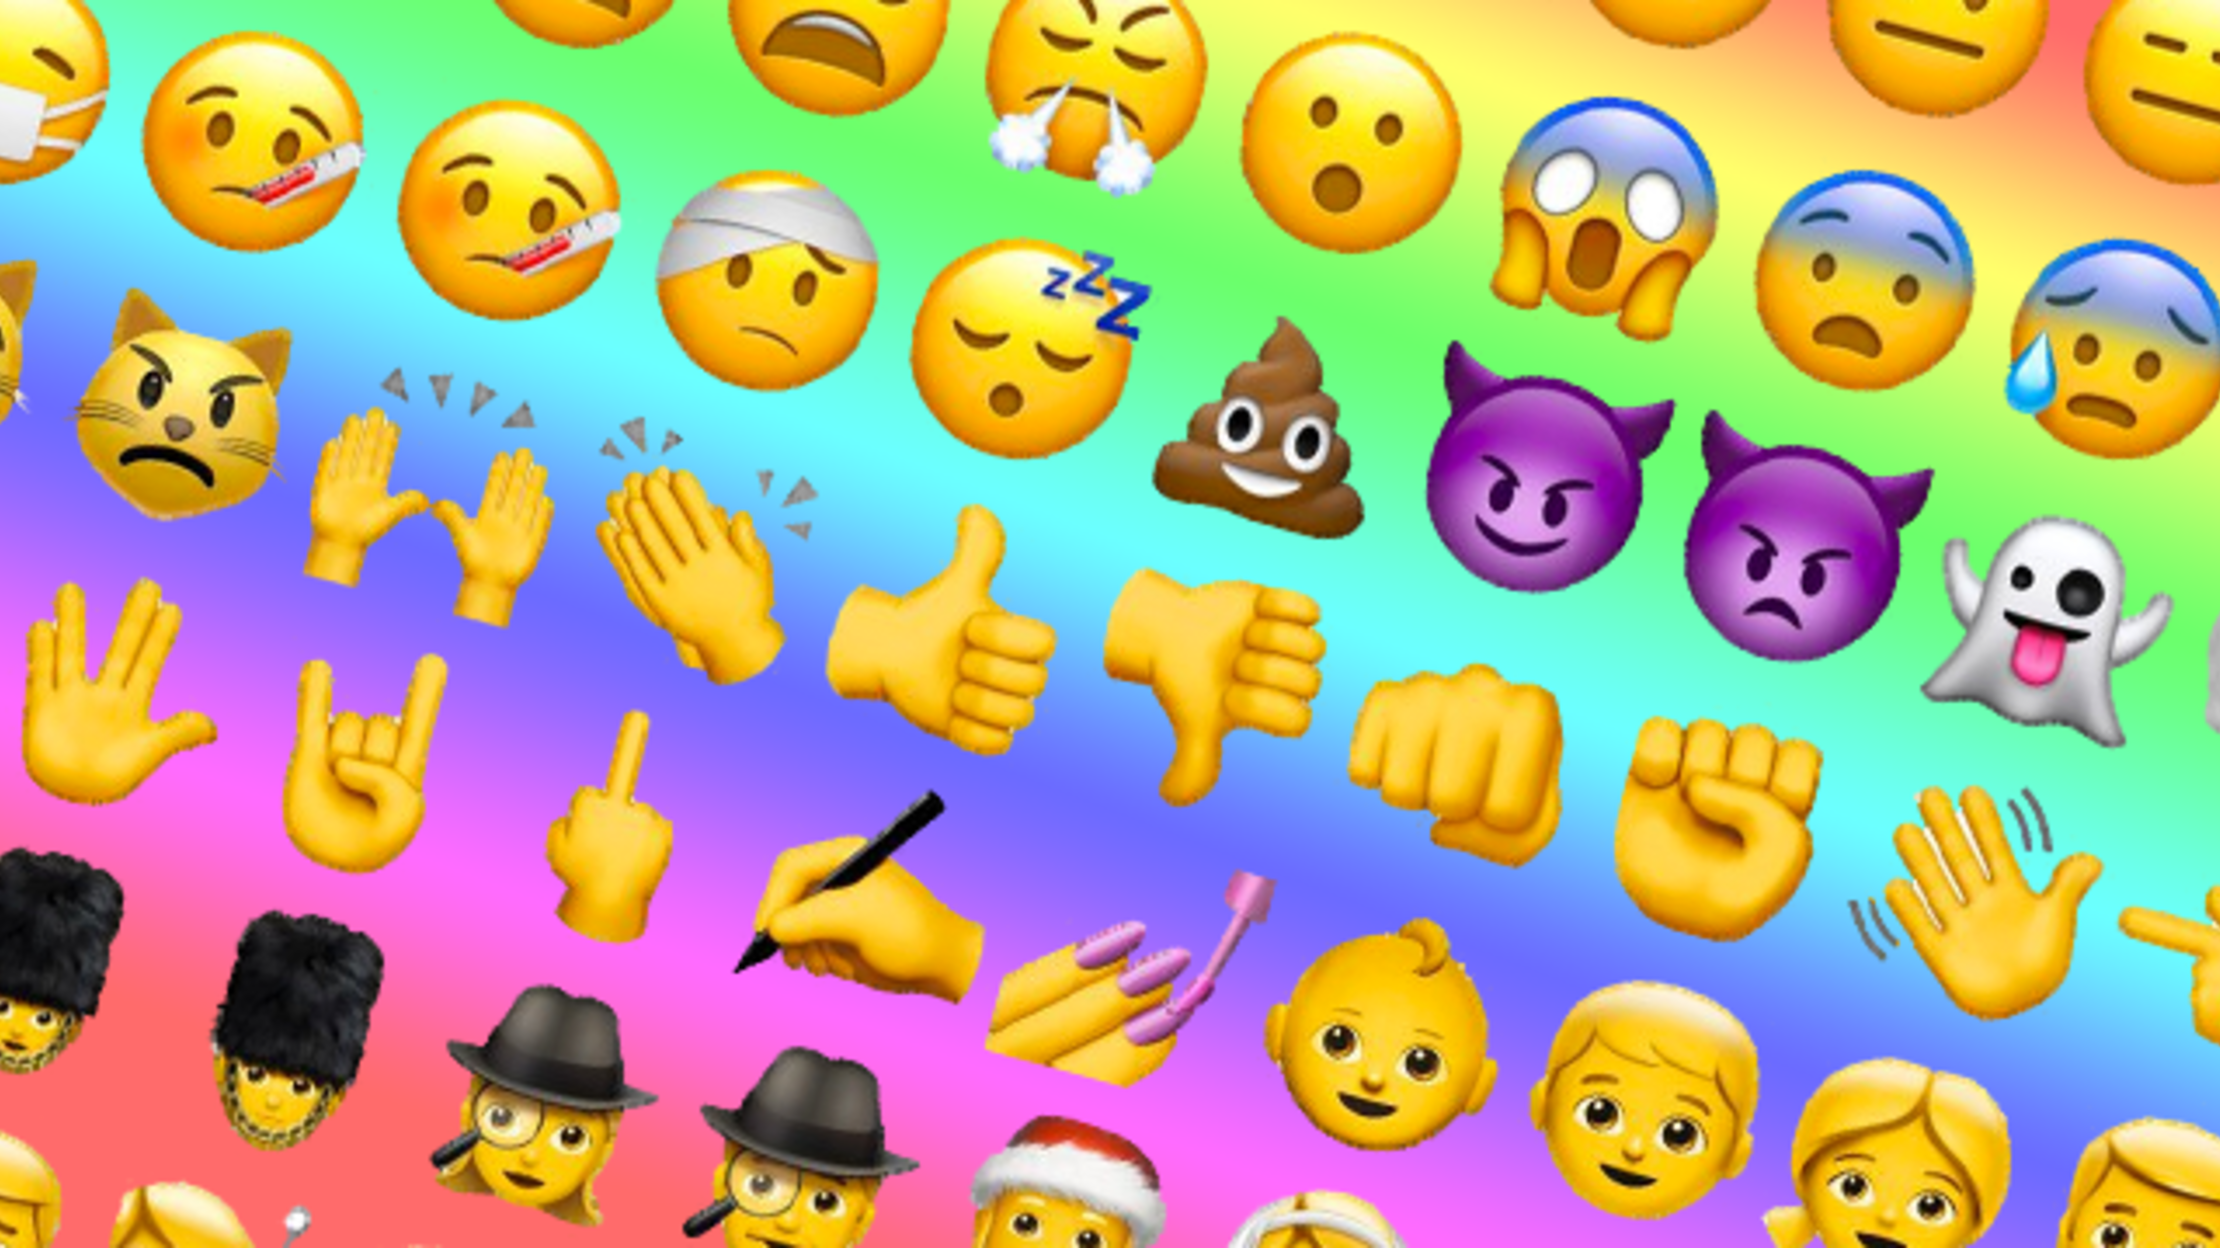 9 Smiley Facts About Emoji | Mental Floss